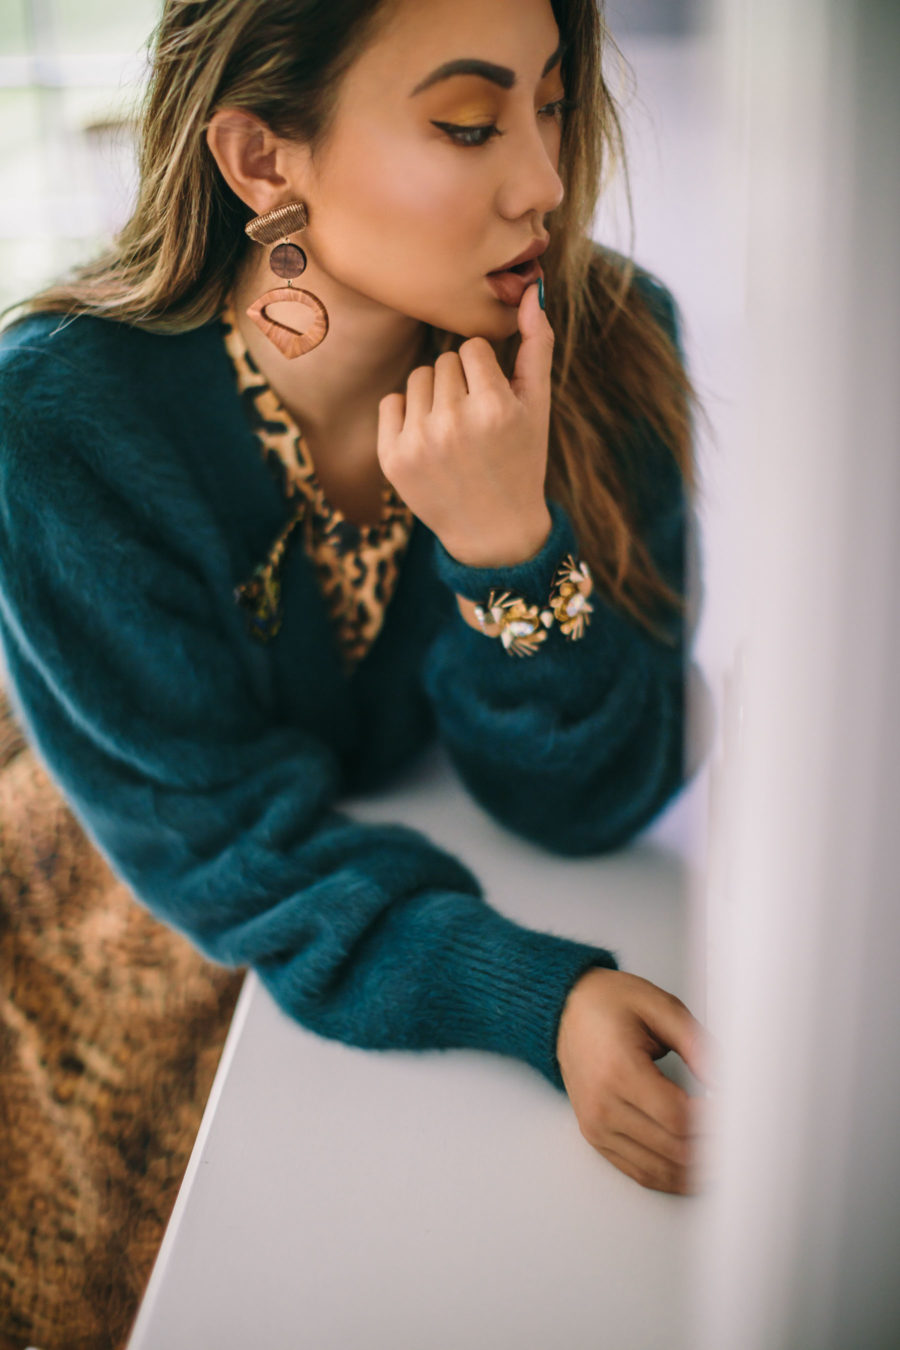 Statement Jewelry for Your Holiday Looks - Mignonne Gavigan jewelry // Notjessfashion.com